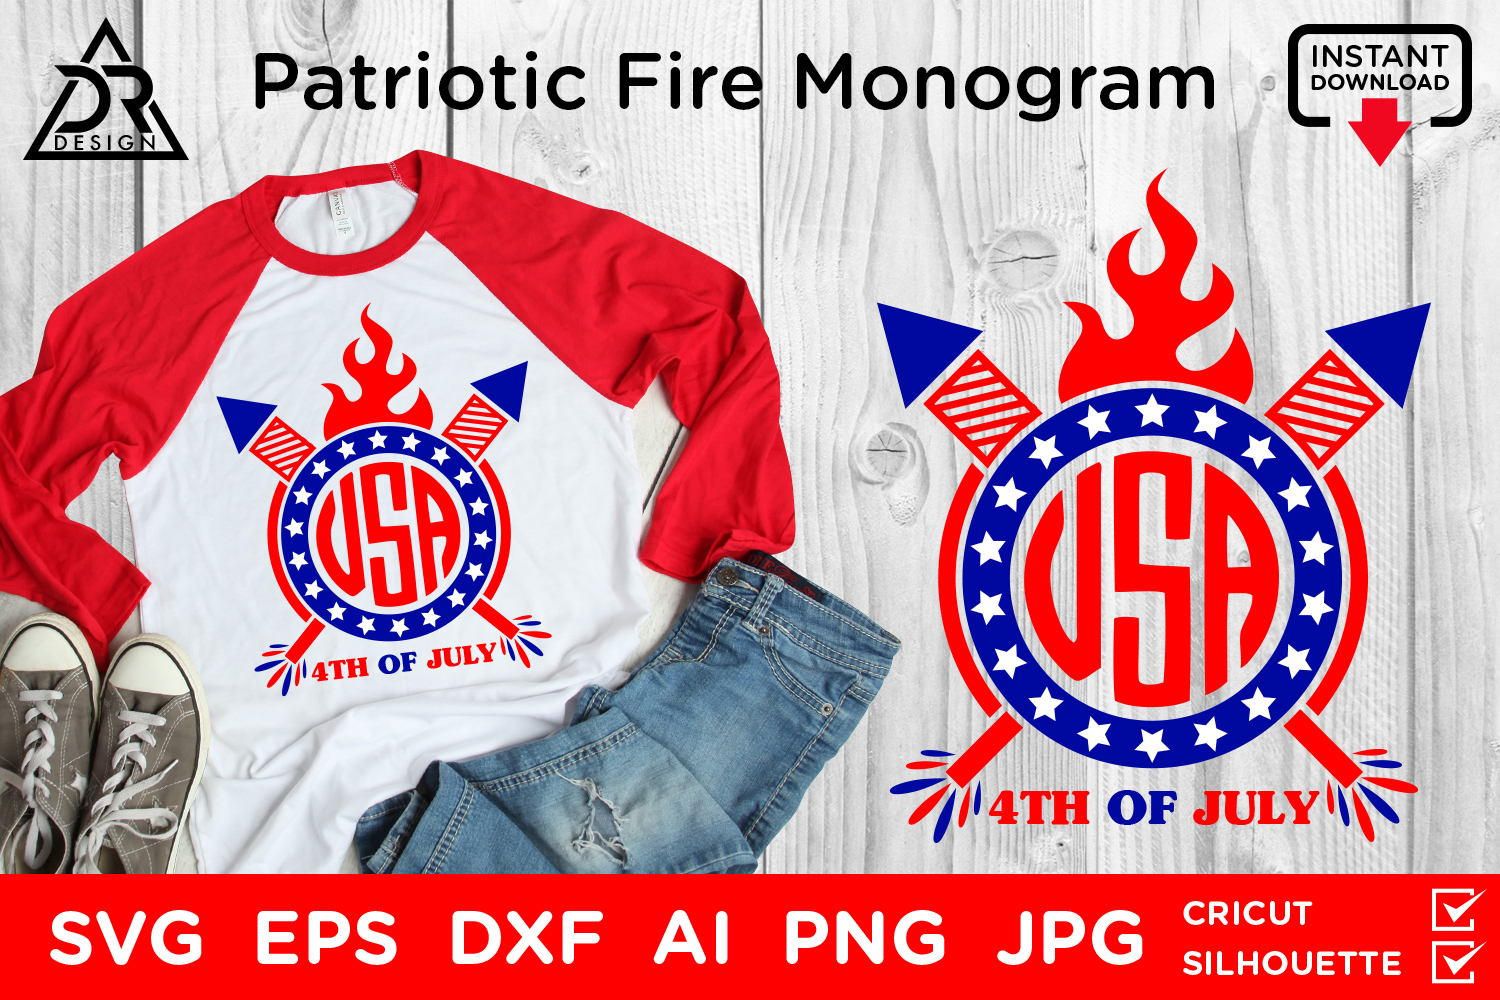 Download Free Patriotic Fire Monogram Graphic By Davidrockdesign Creative for Cricut Explore, Silhouette and other cutting machines.